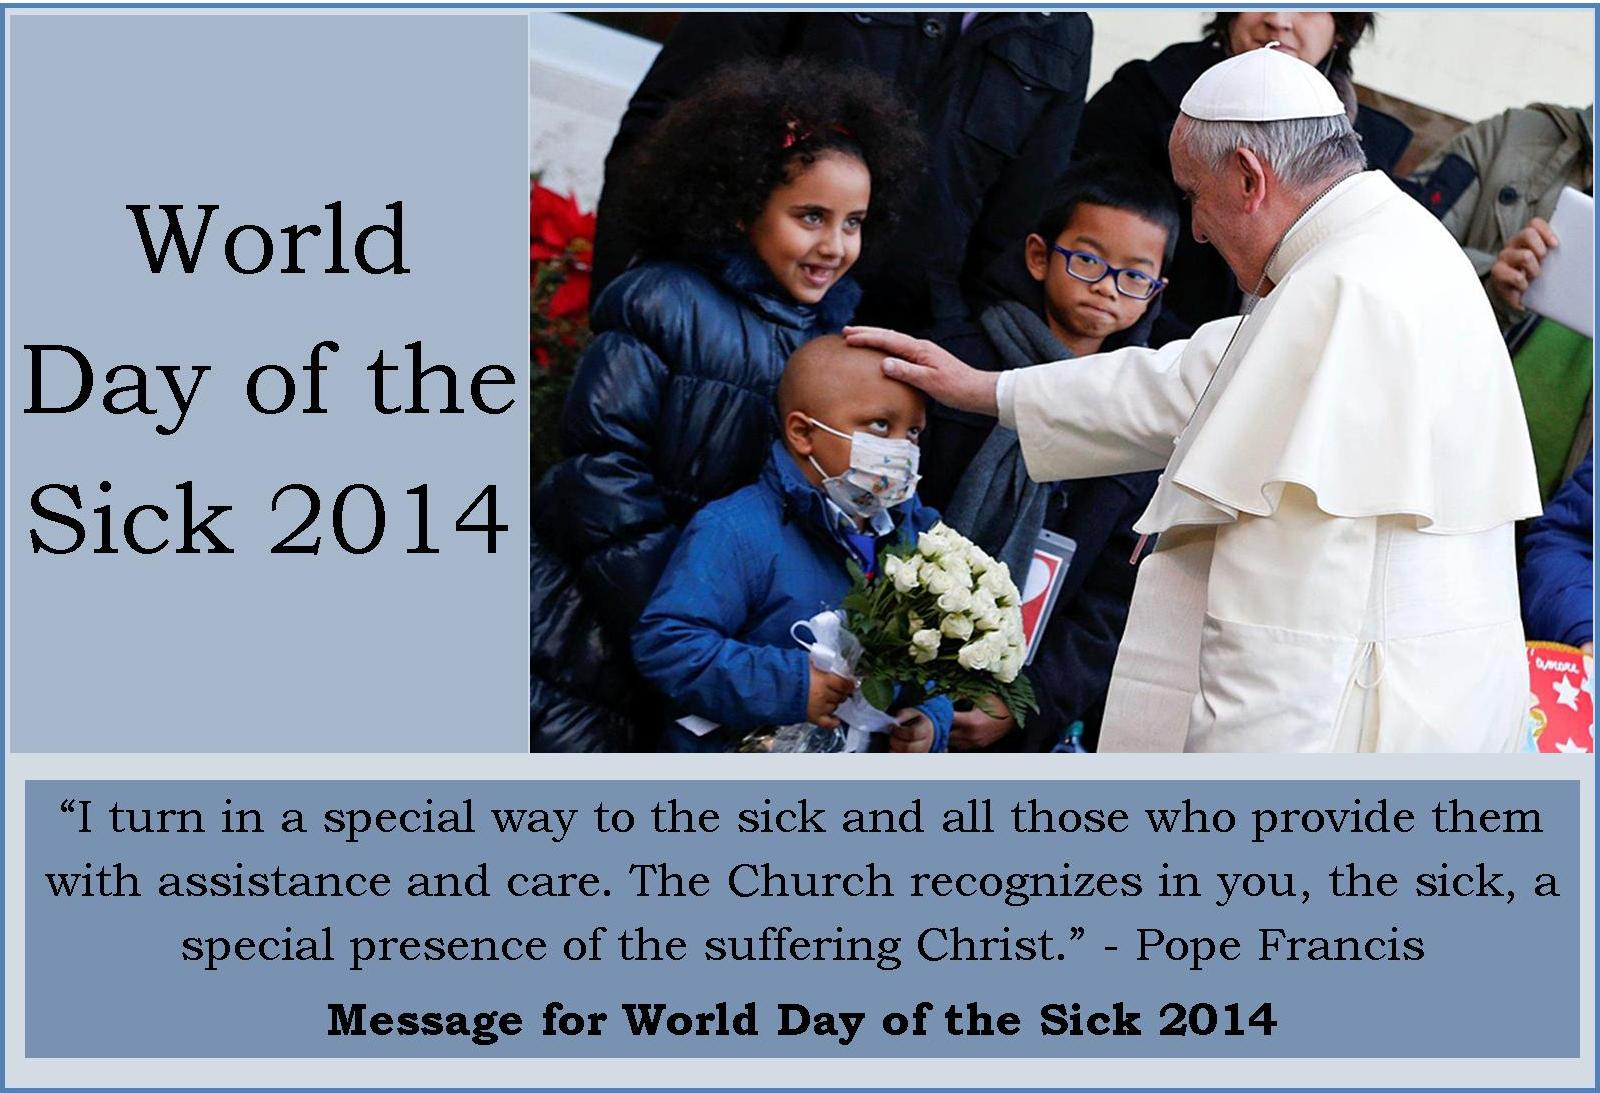 World Day of the Sick image 2014